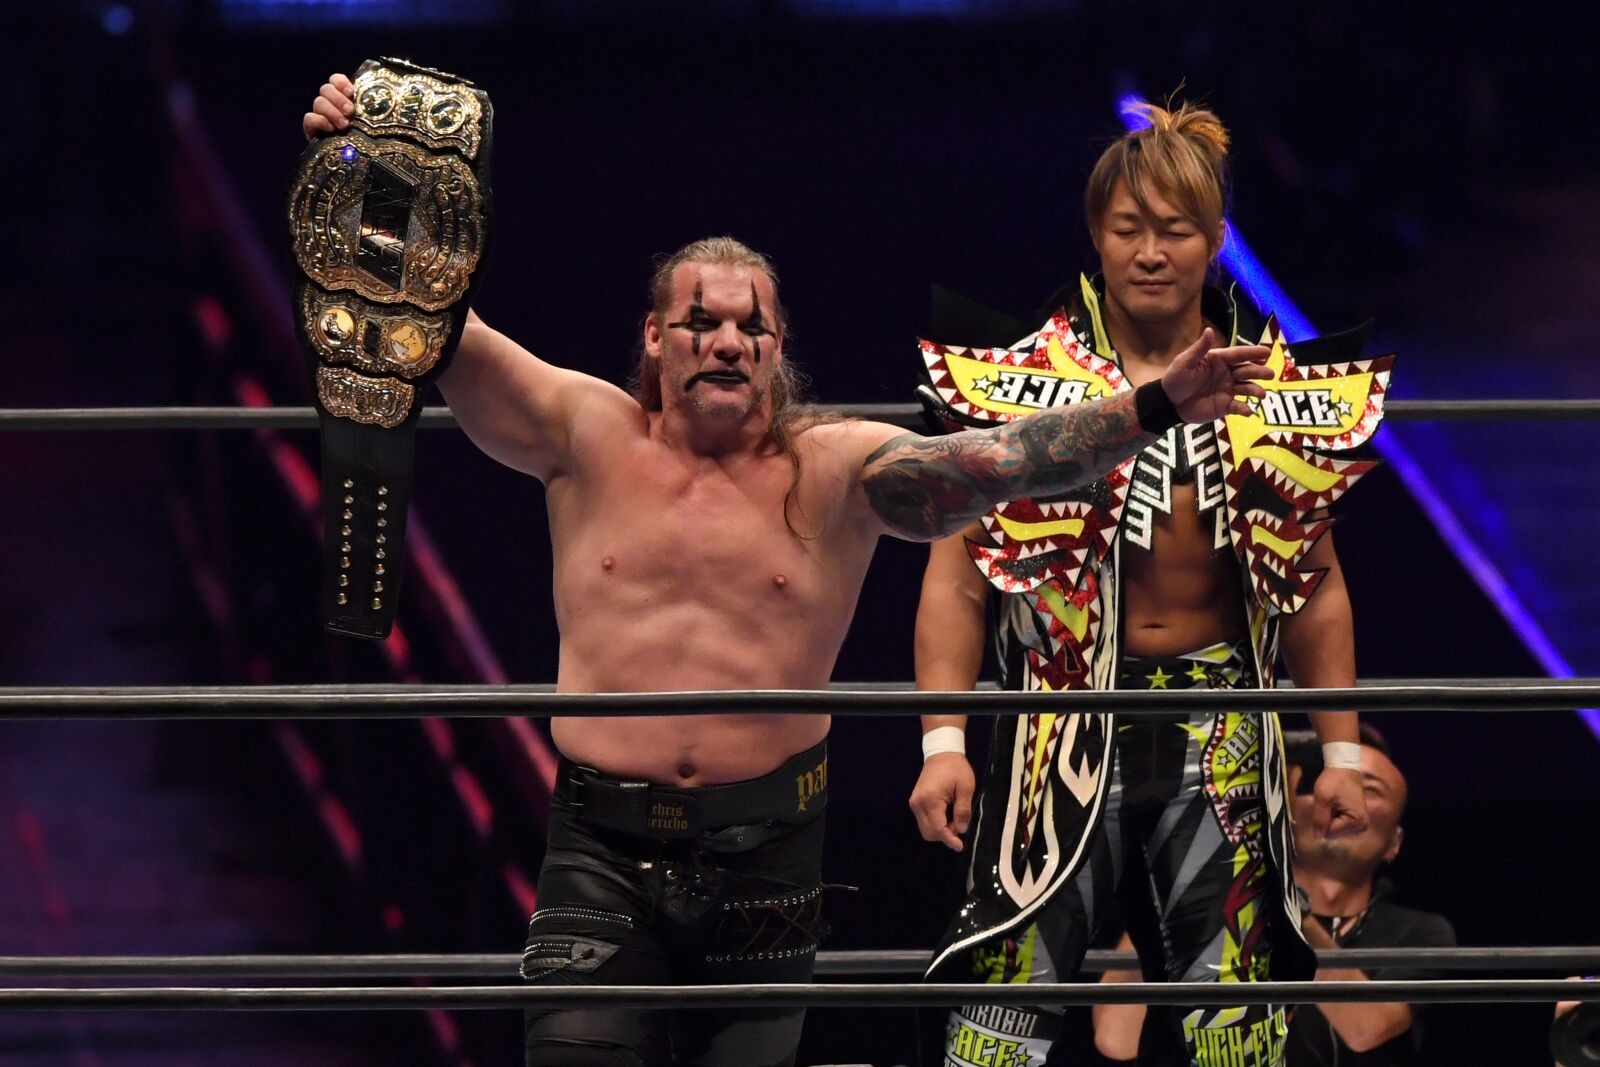 AEW Dynamite: Chris Jericho's Rock 'N' Wrestling Rager at Sea Results, Highlights and Grades